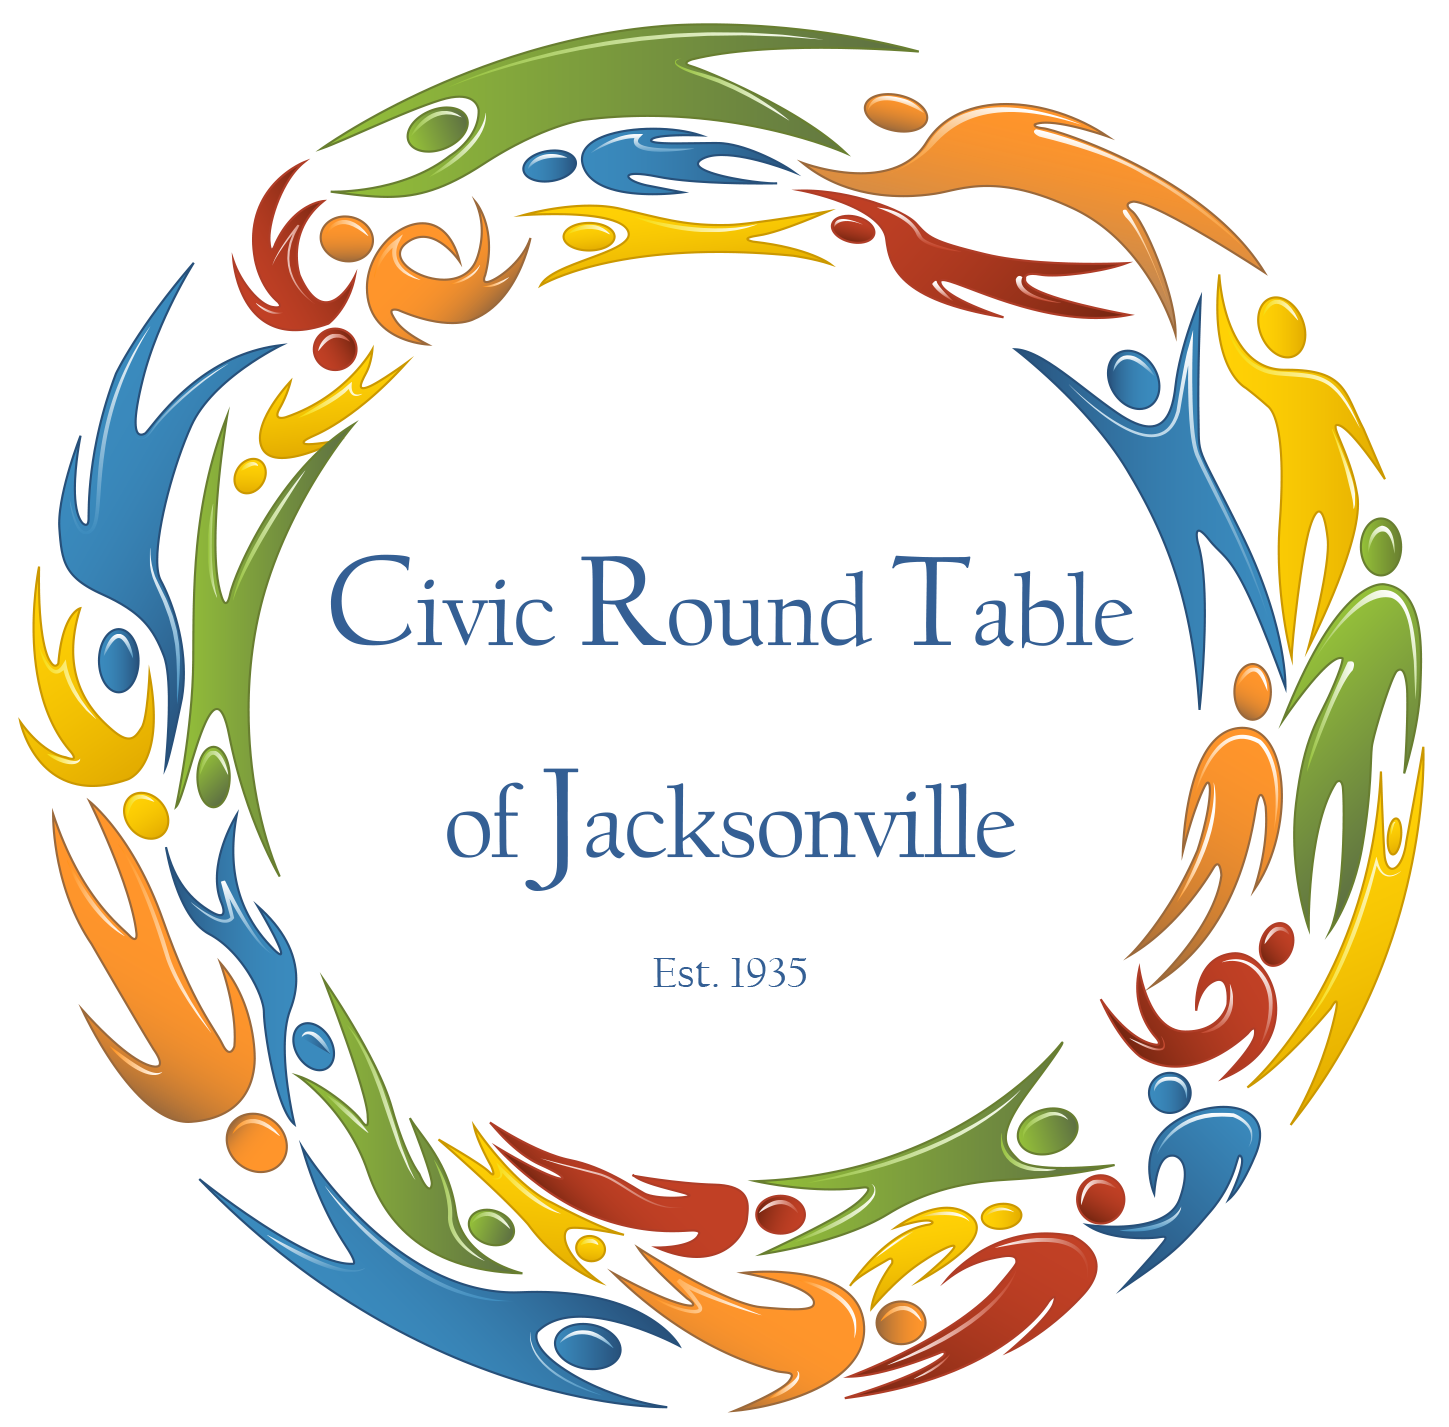 Events civic round of. Lunch clipart lunch table